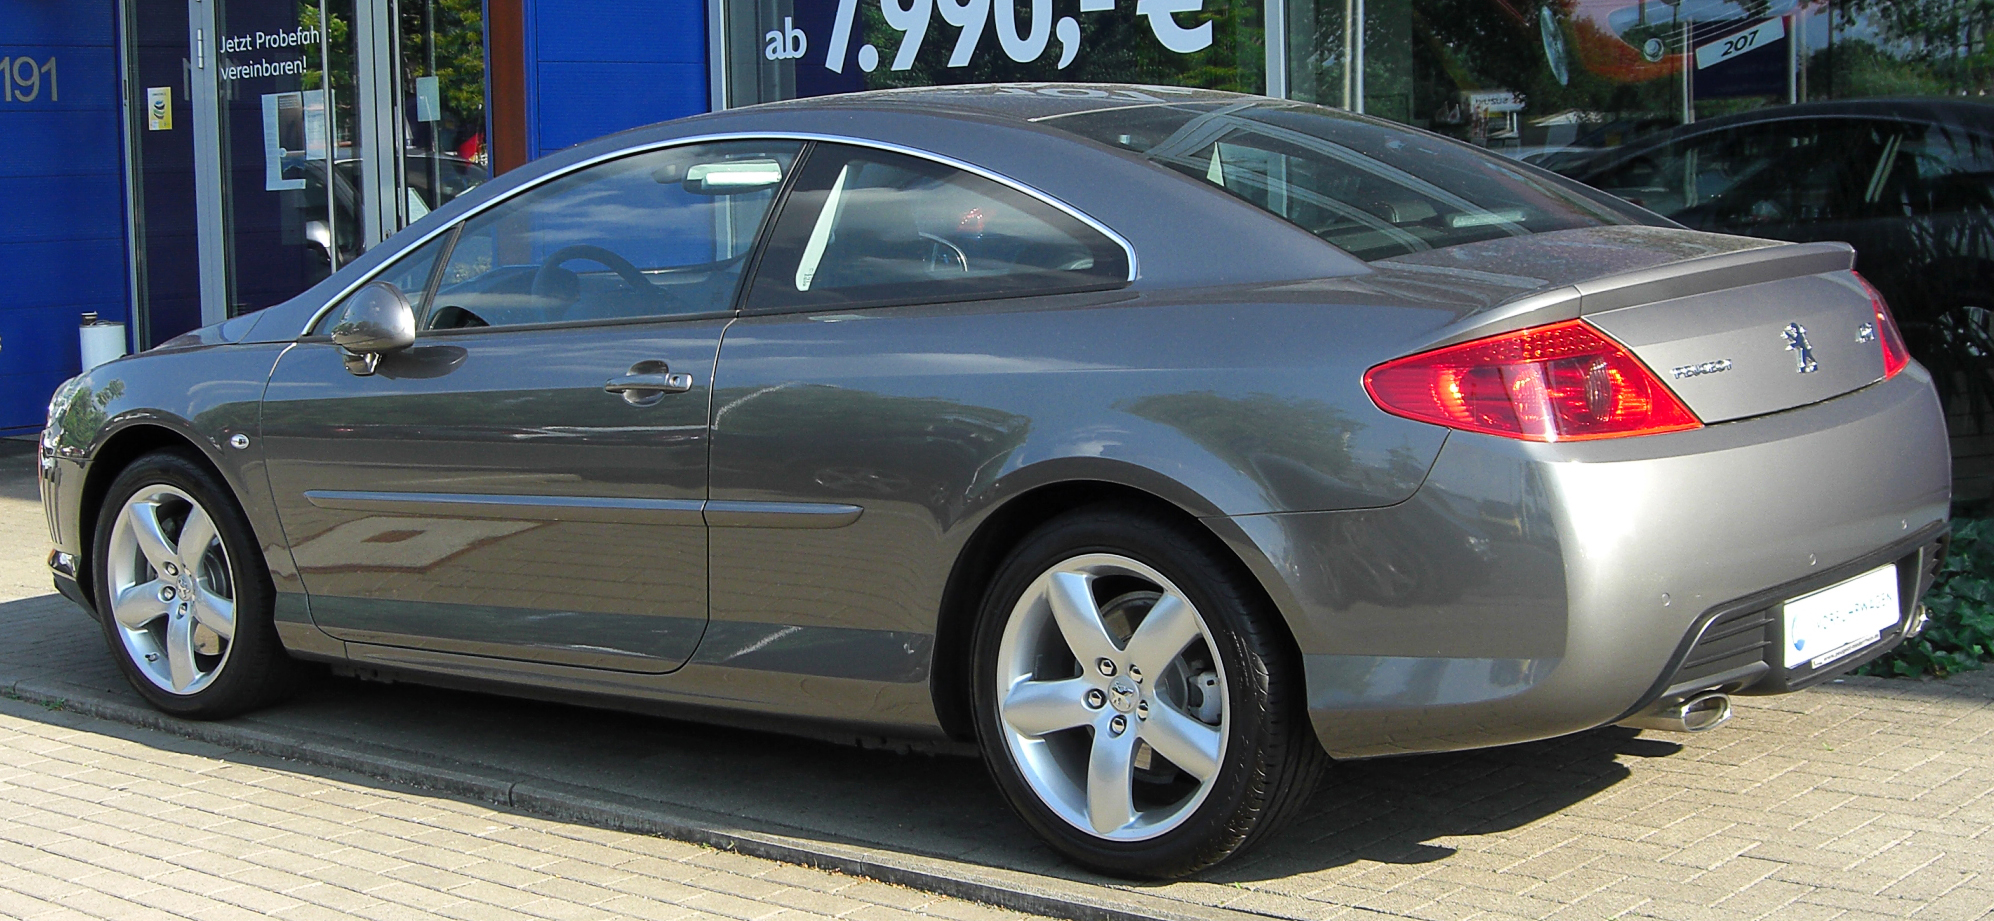 2010 peugeot 407 coupe pictures information and specs. Black Bedroom Furniture Sets. Home Design Ideas